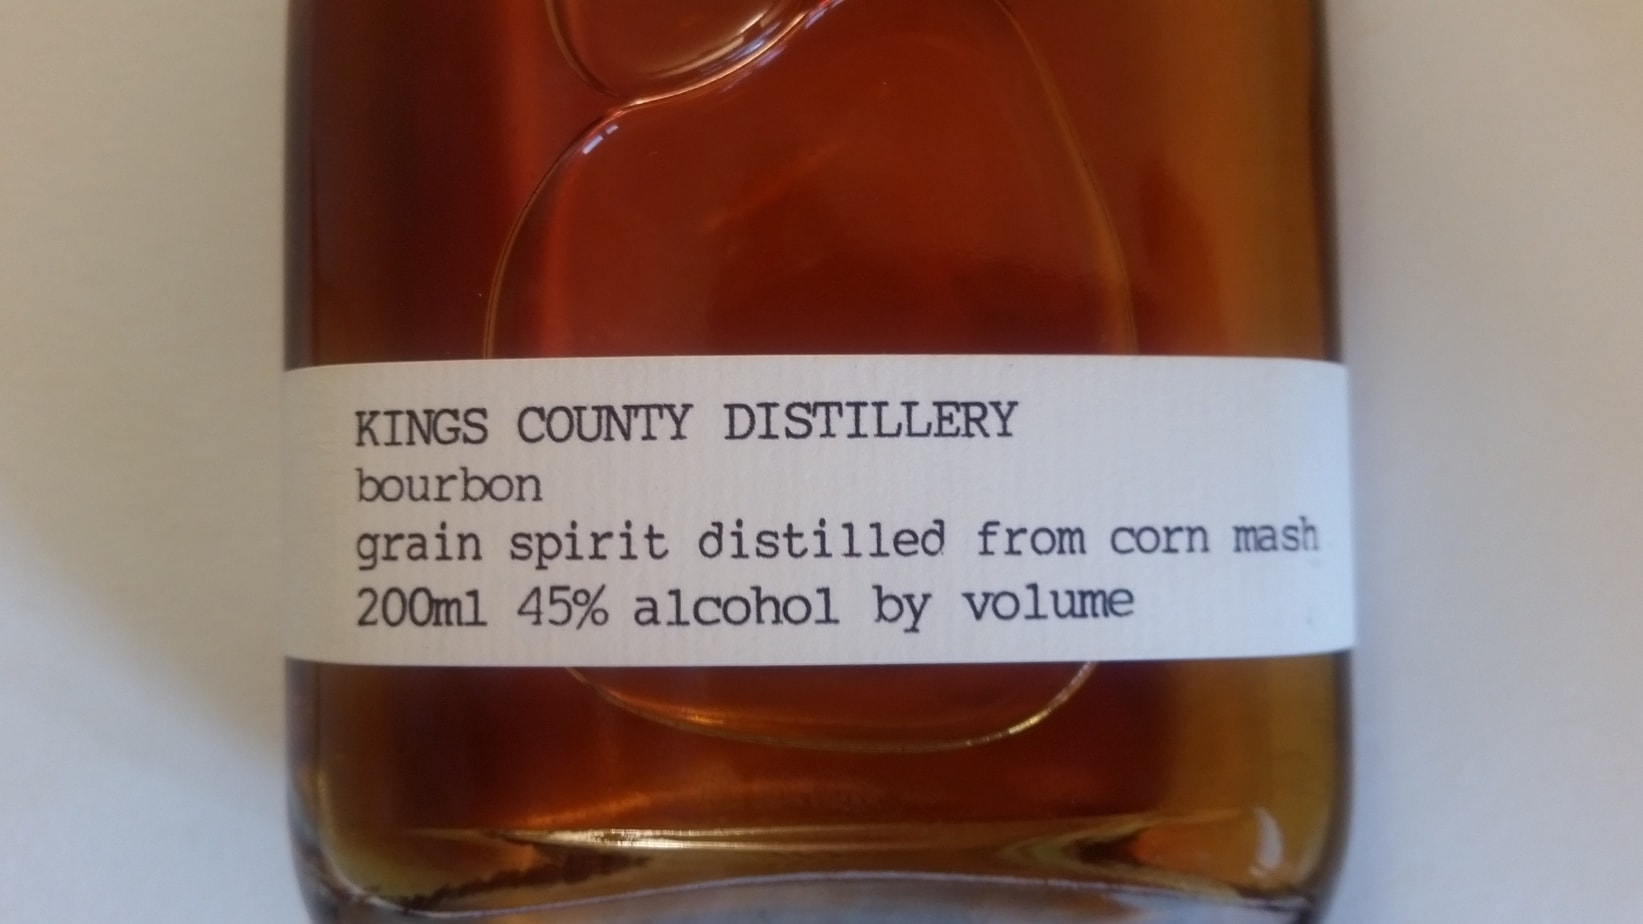 The label on Kings County Distillery Bourbon